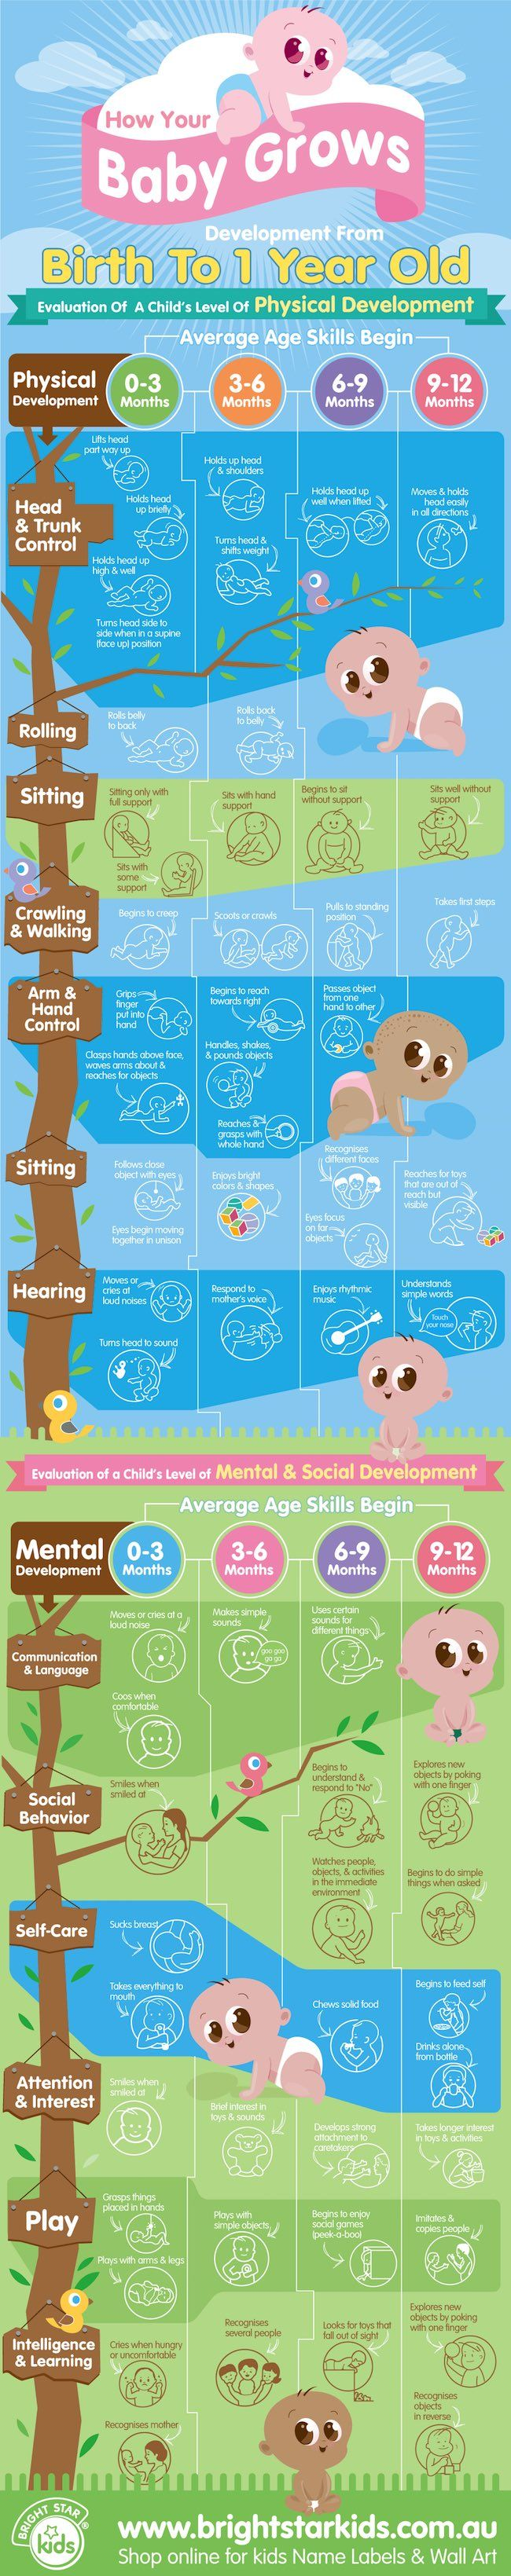 How your baby grows and develops chart from bright star kids how your baby grows and develops chart from bright star kids nvjuhfo Choice Image